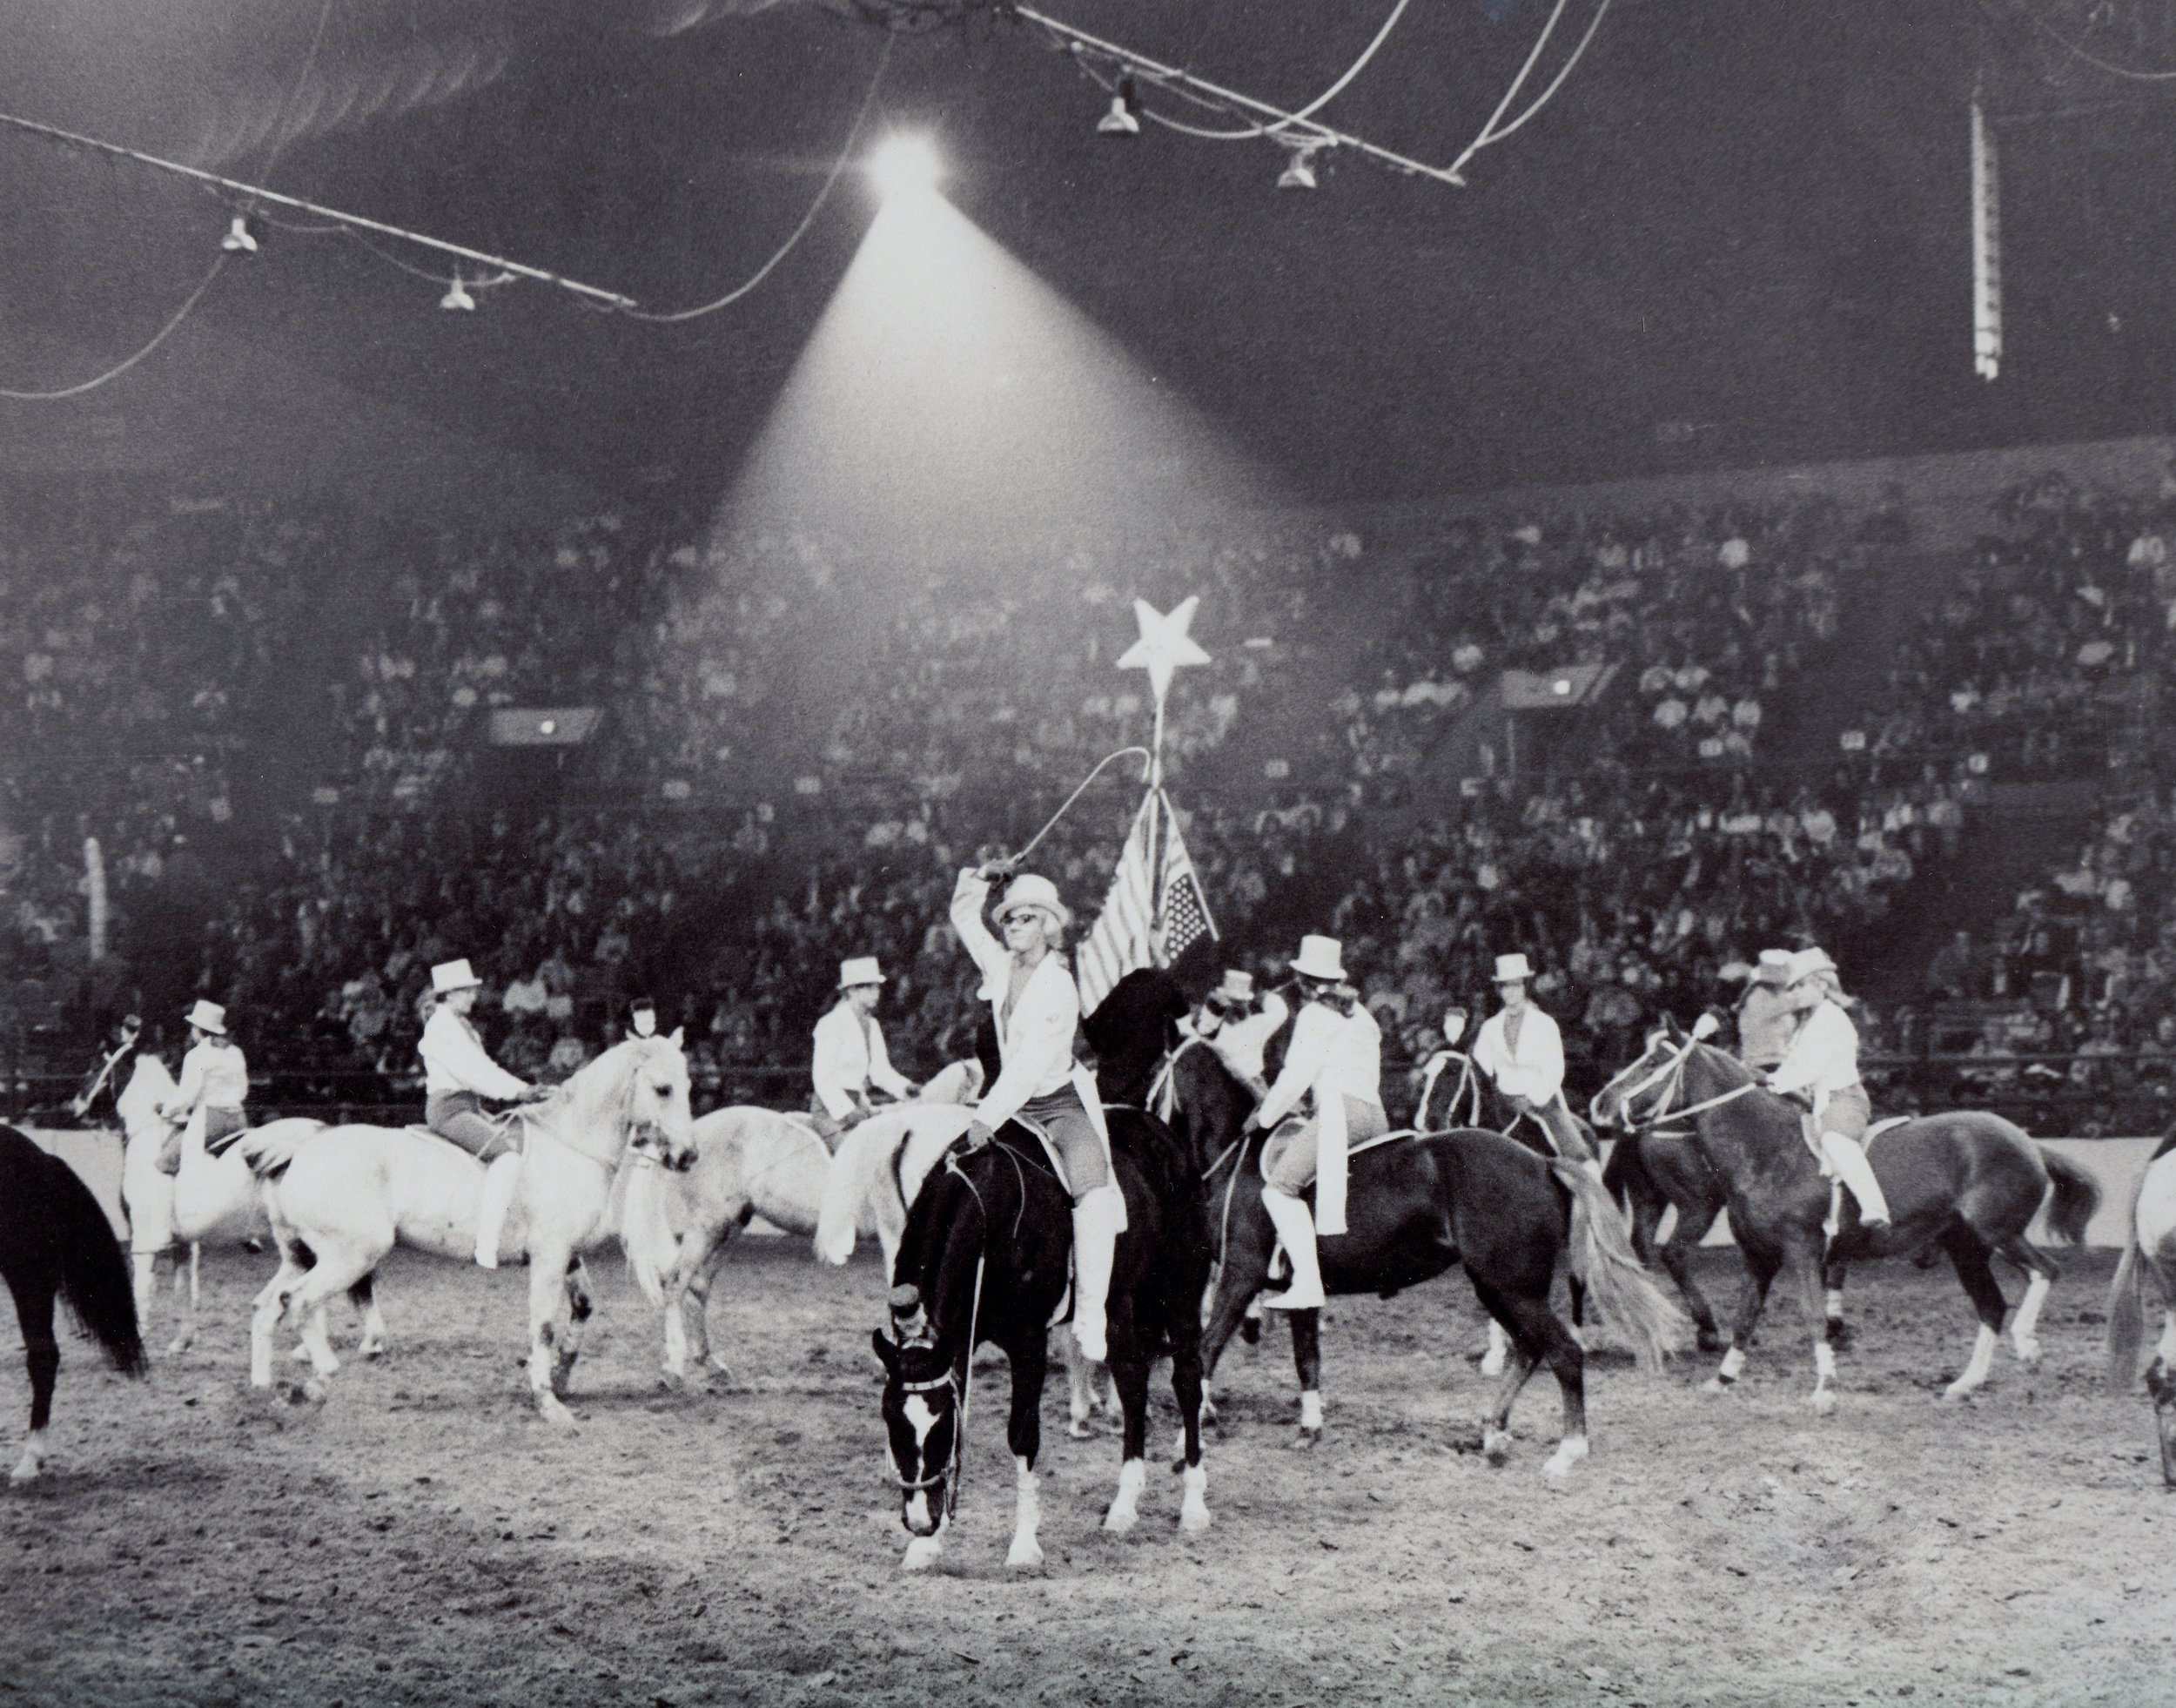 Melodie Mundell salutes the National Western Stock Show crowd during the 1969 exhibition of the dressage riders of Westernaires.